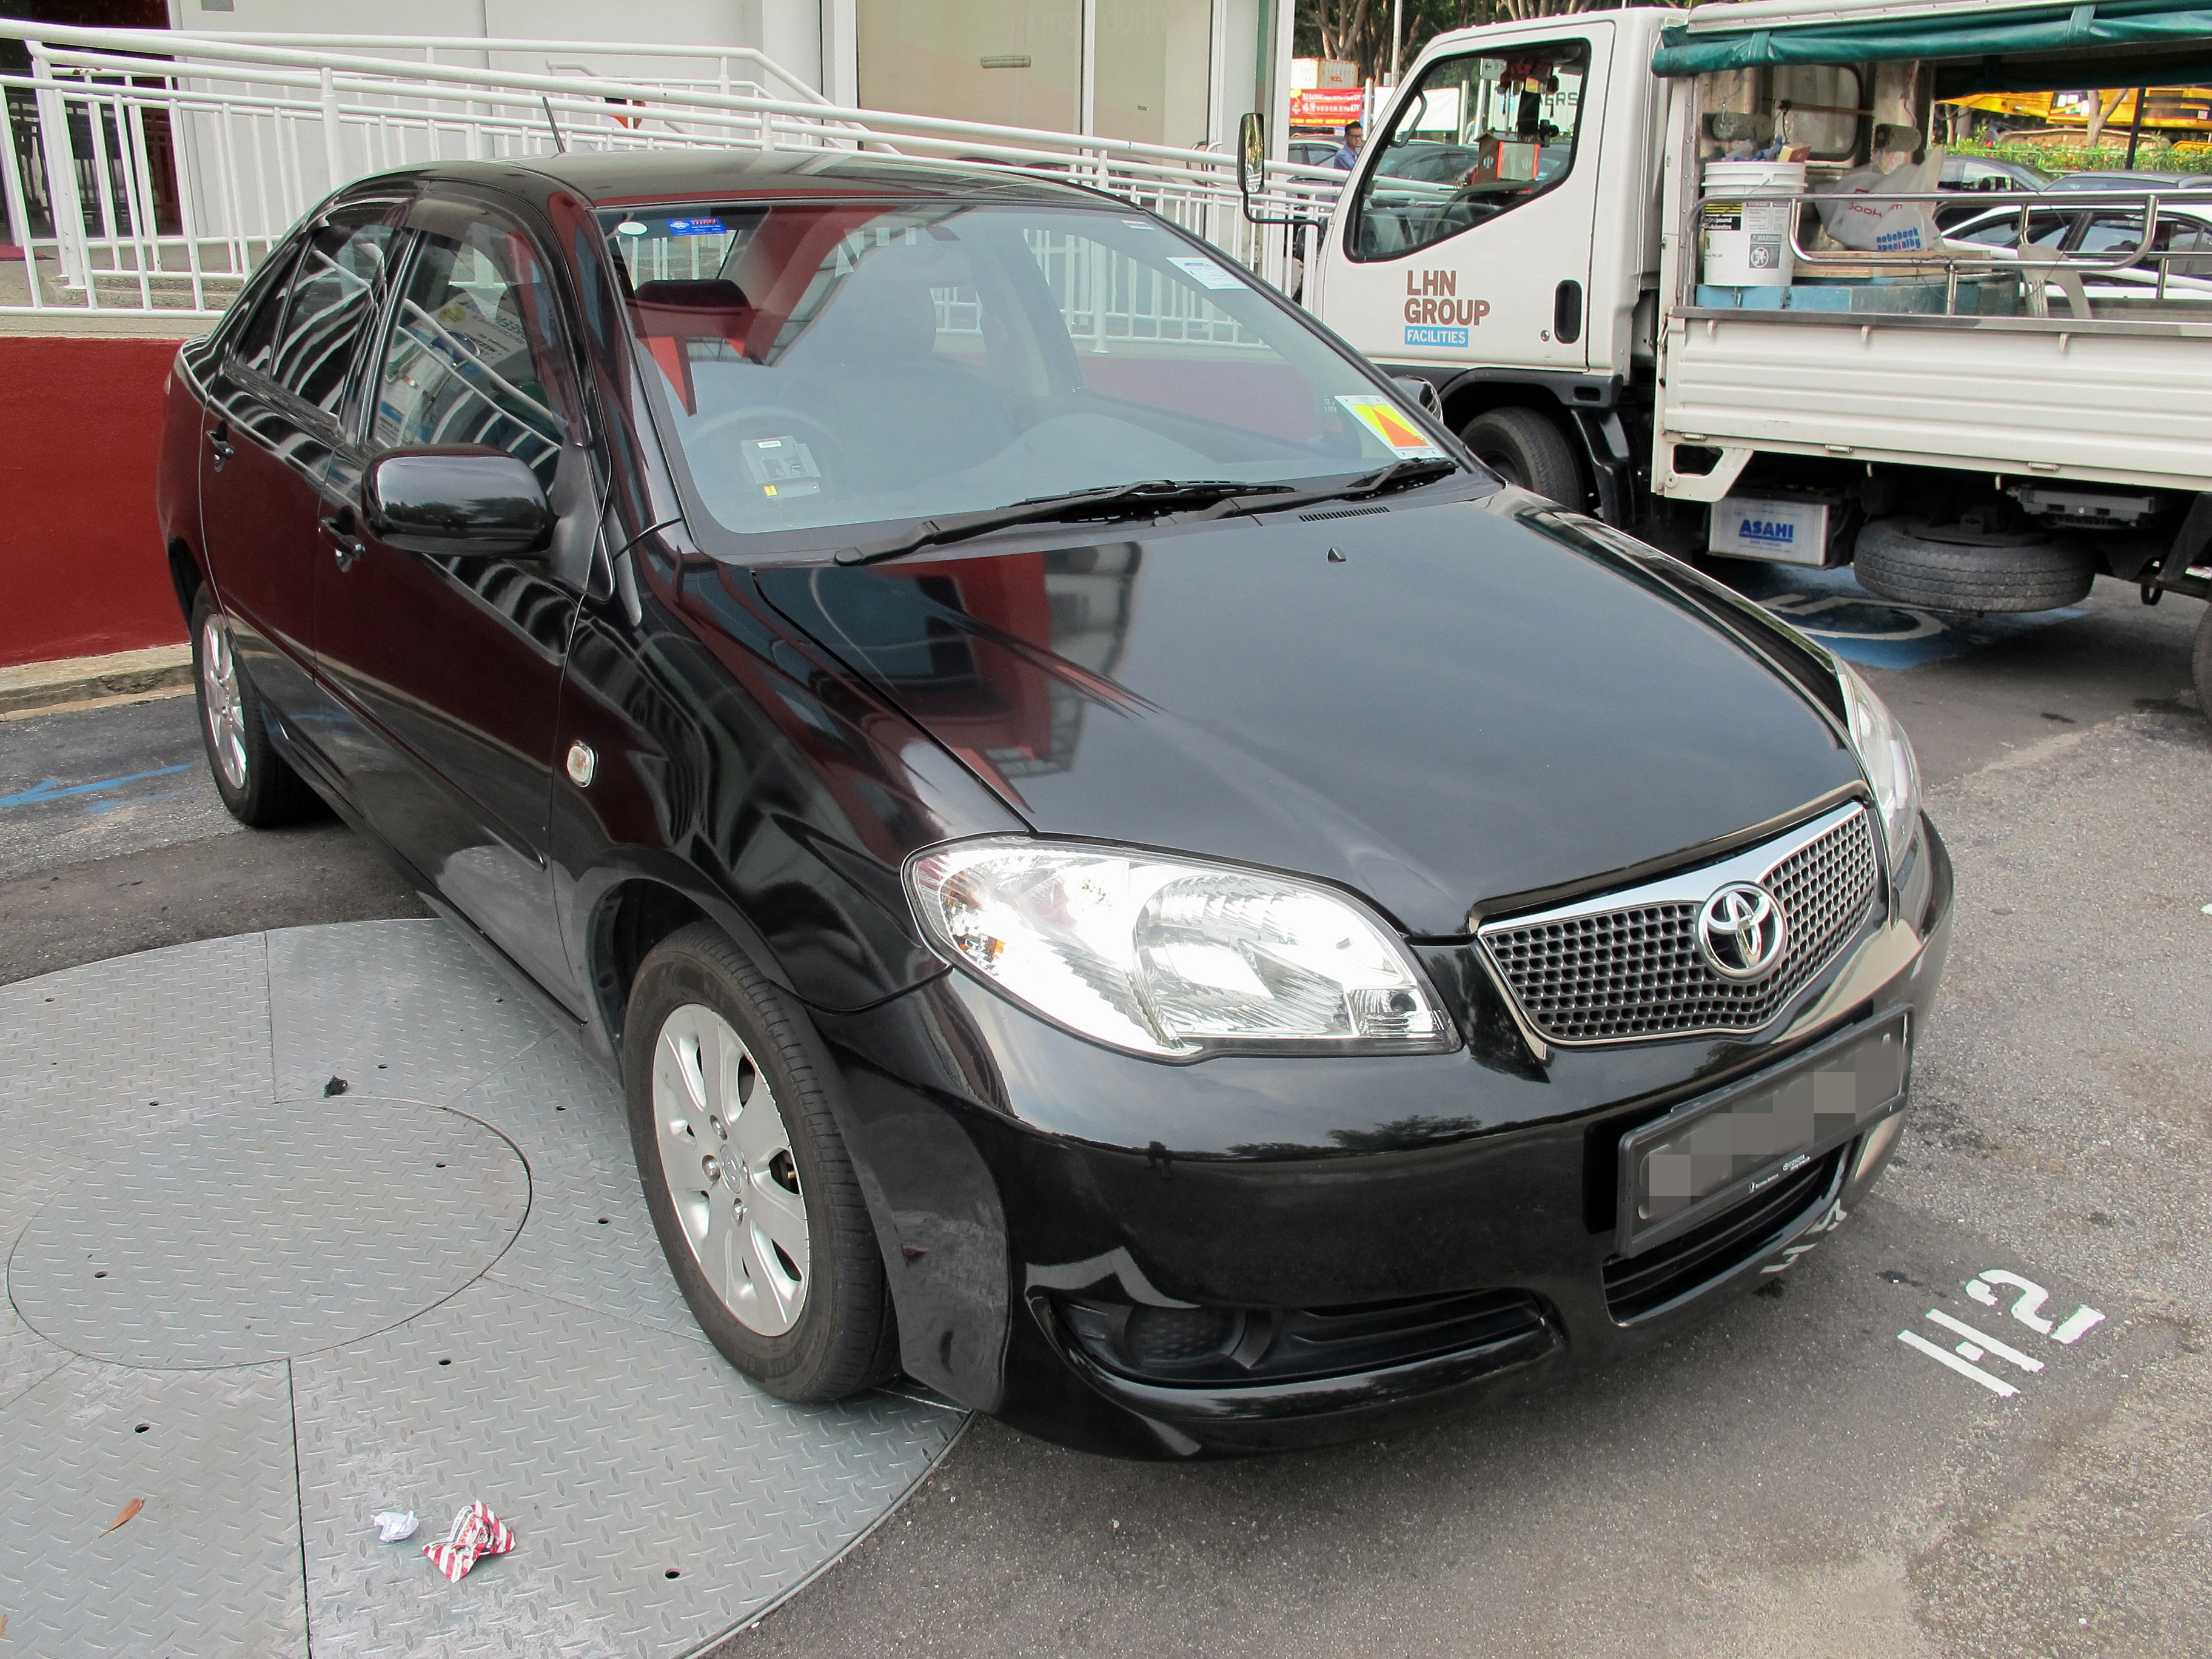 Cheap Car Rental Singapore at commonwealth